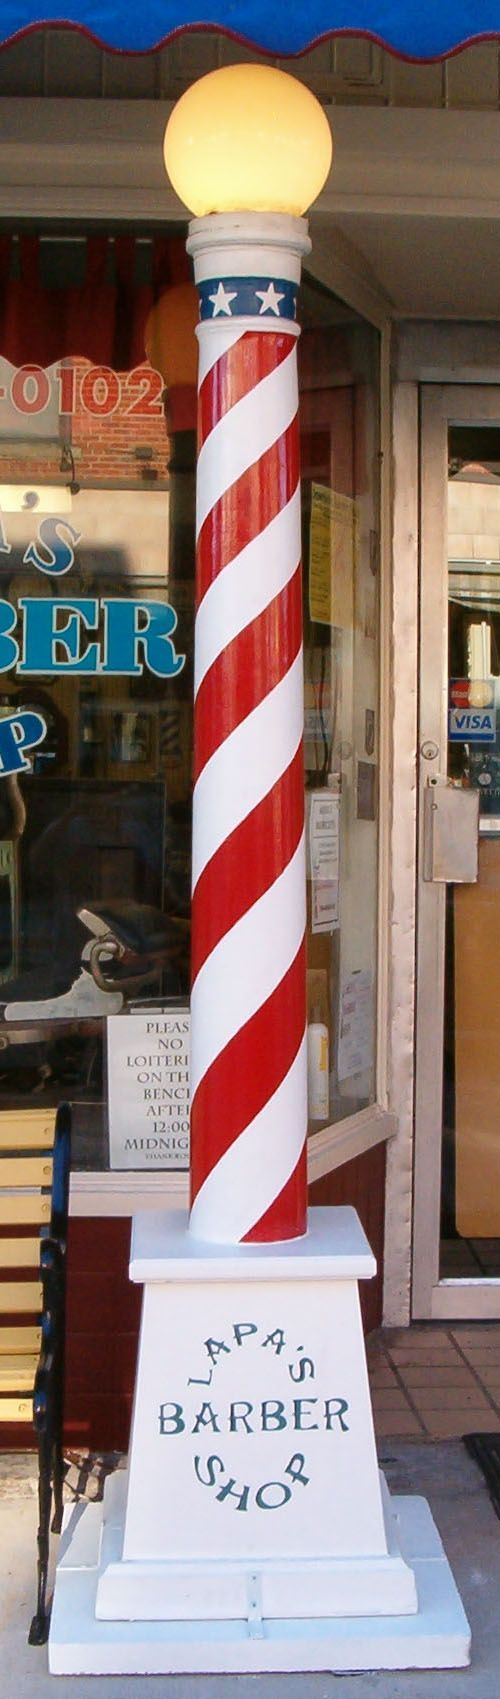 Barber shop ideas - The Unique Lighted Pole On The Sidewalk Outside Lapa S Barber Shop At 232 S Broad Street